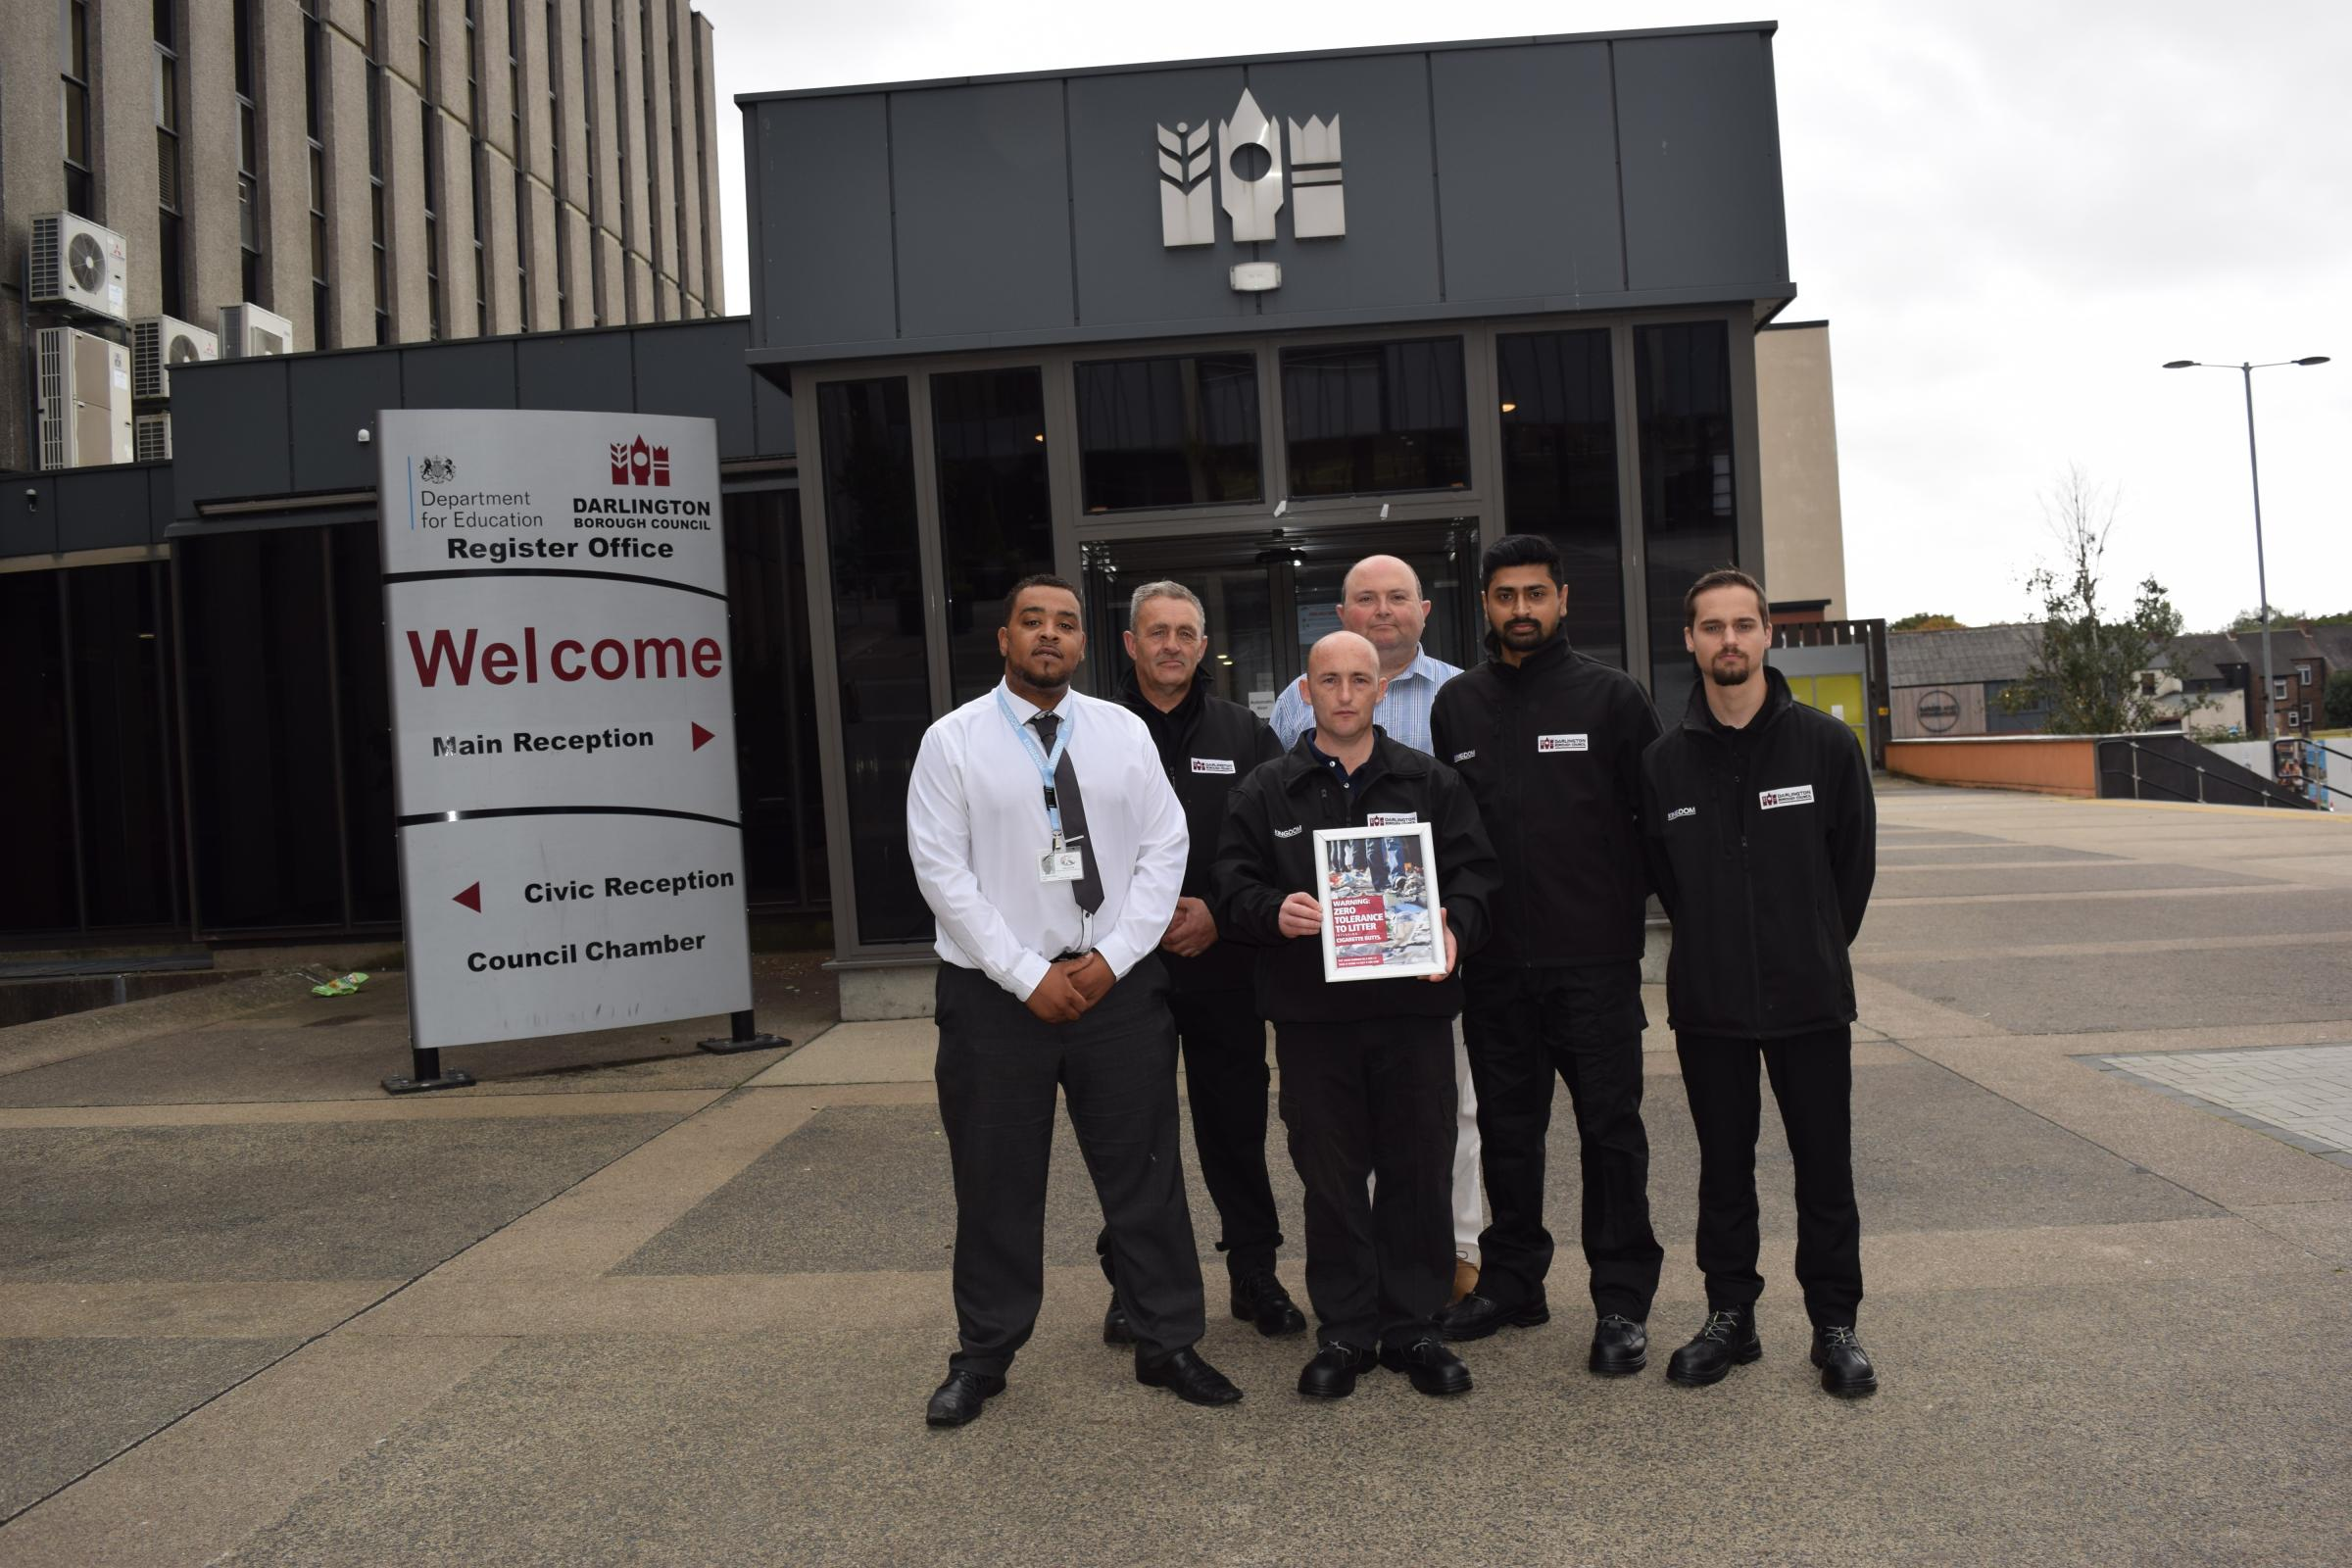 LITTER: John Walker, business manager at Kingdom; Marc Edworthy, business support at Kingdom; Terry Hughes, enforcement officer; Cllr Nick Wallis, Darlington Borough Council cabinet member for leisure and the local environment; Arun George, enforcement of